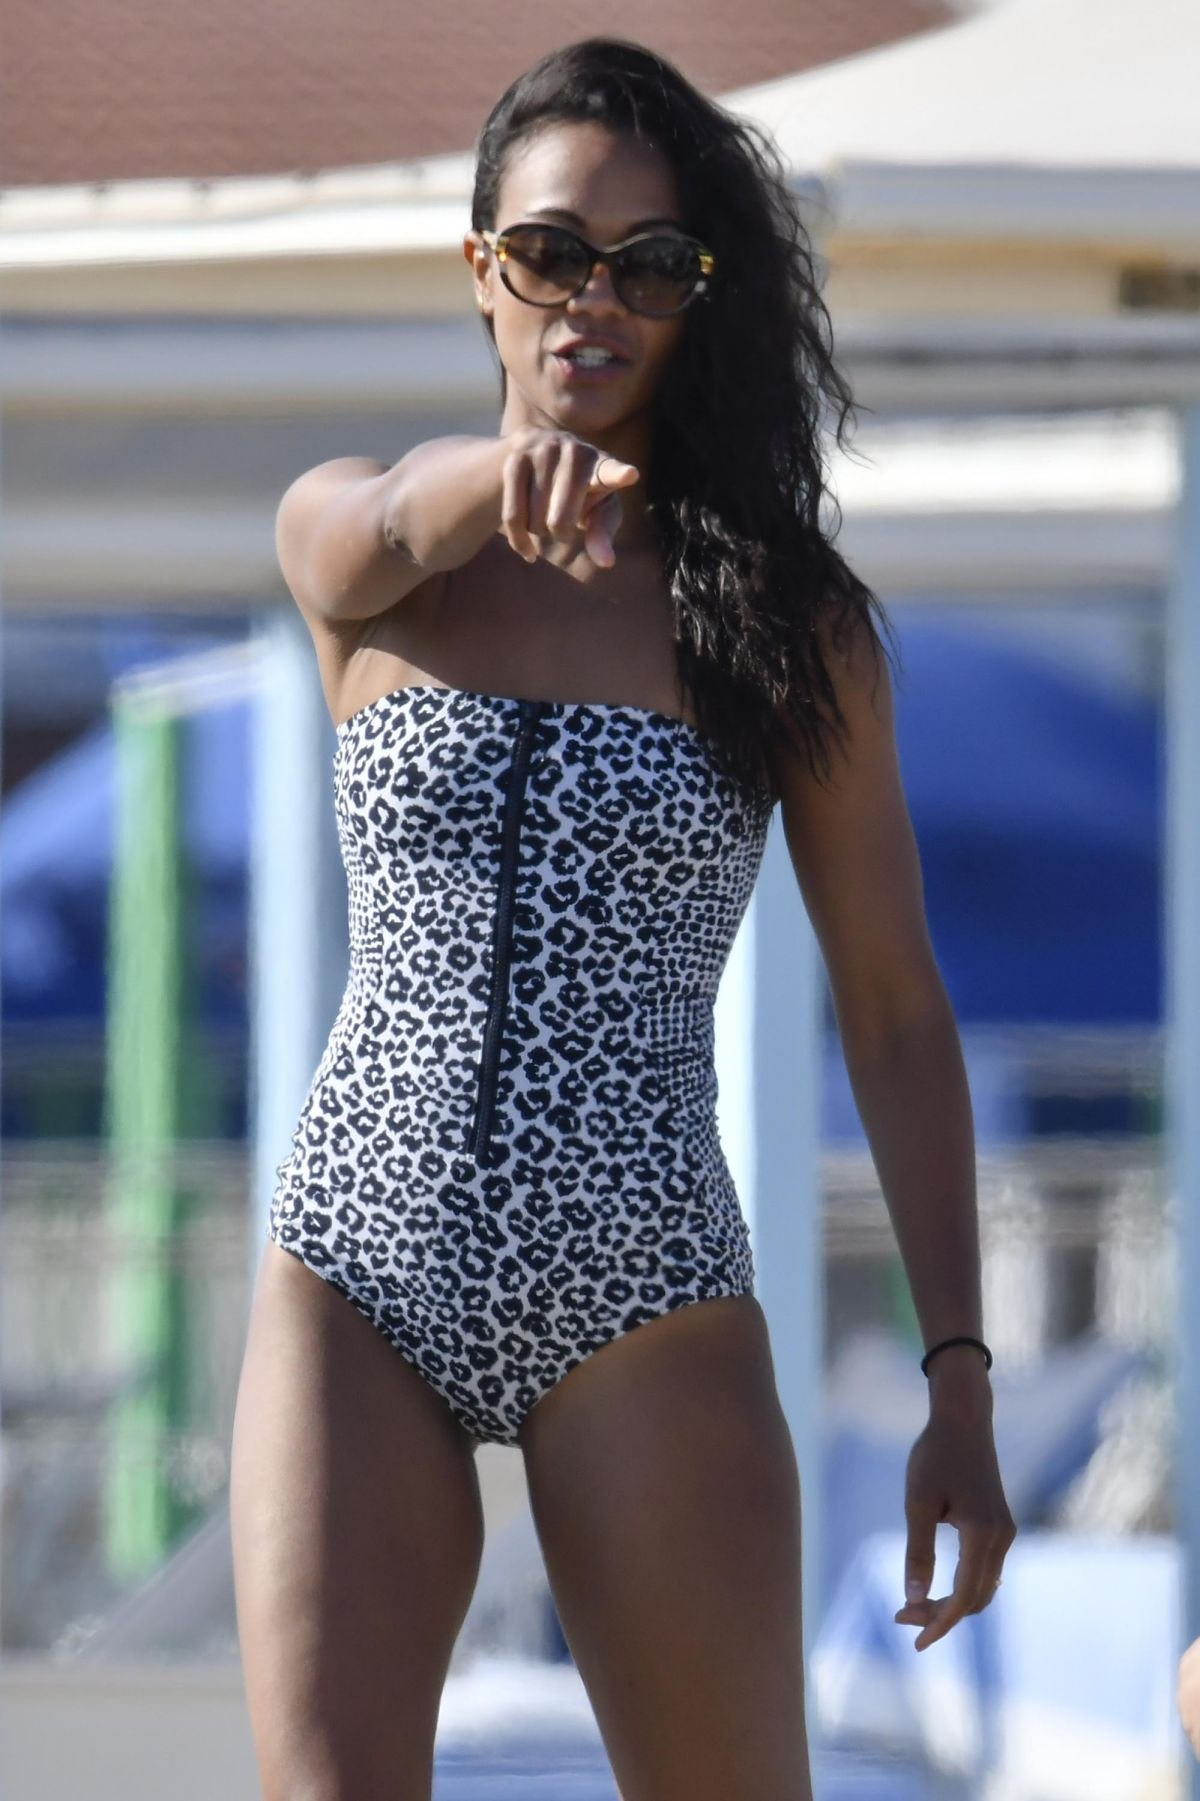 Bikini Zoe Saldana naked (19 photos), Sexy, Cleavage, Instagram, legs 2018